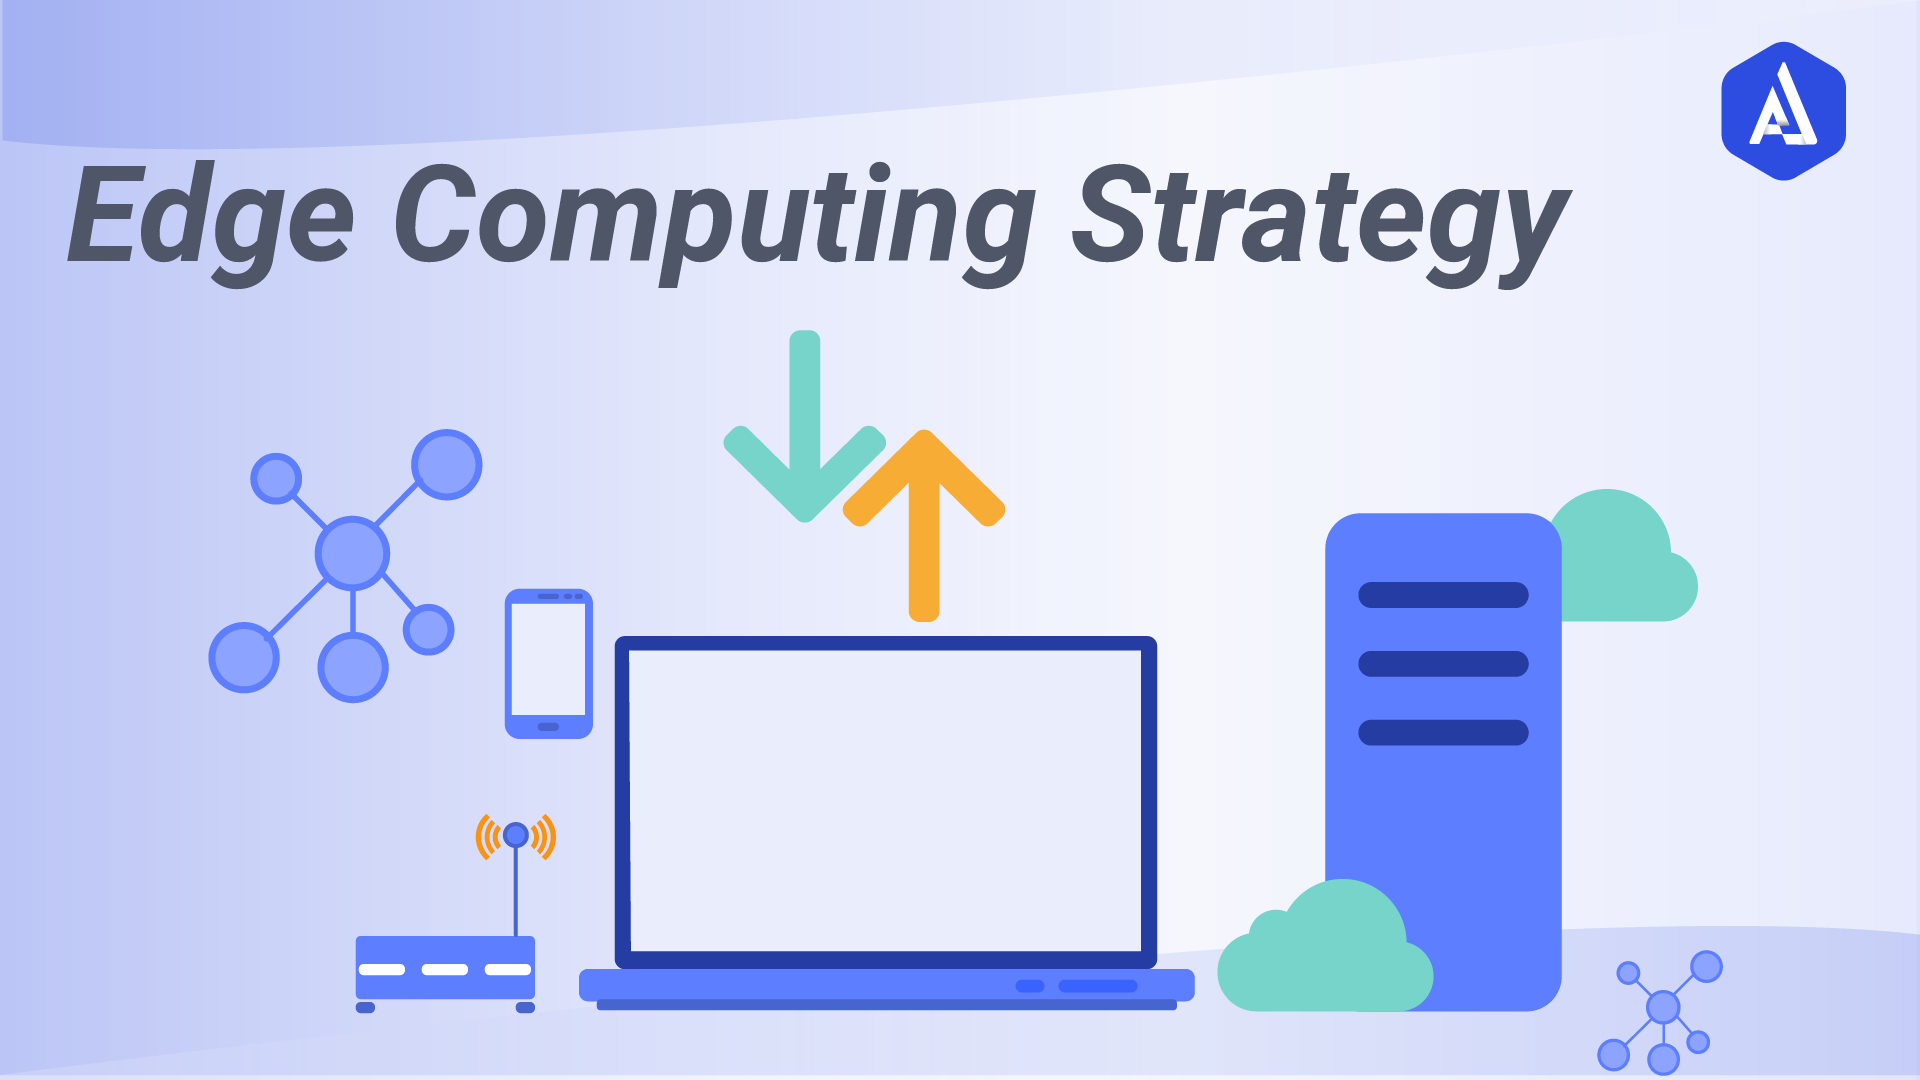 Edge Computing Architecture and Benefits Overview